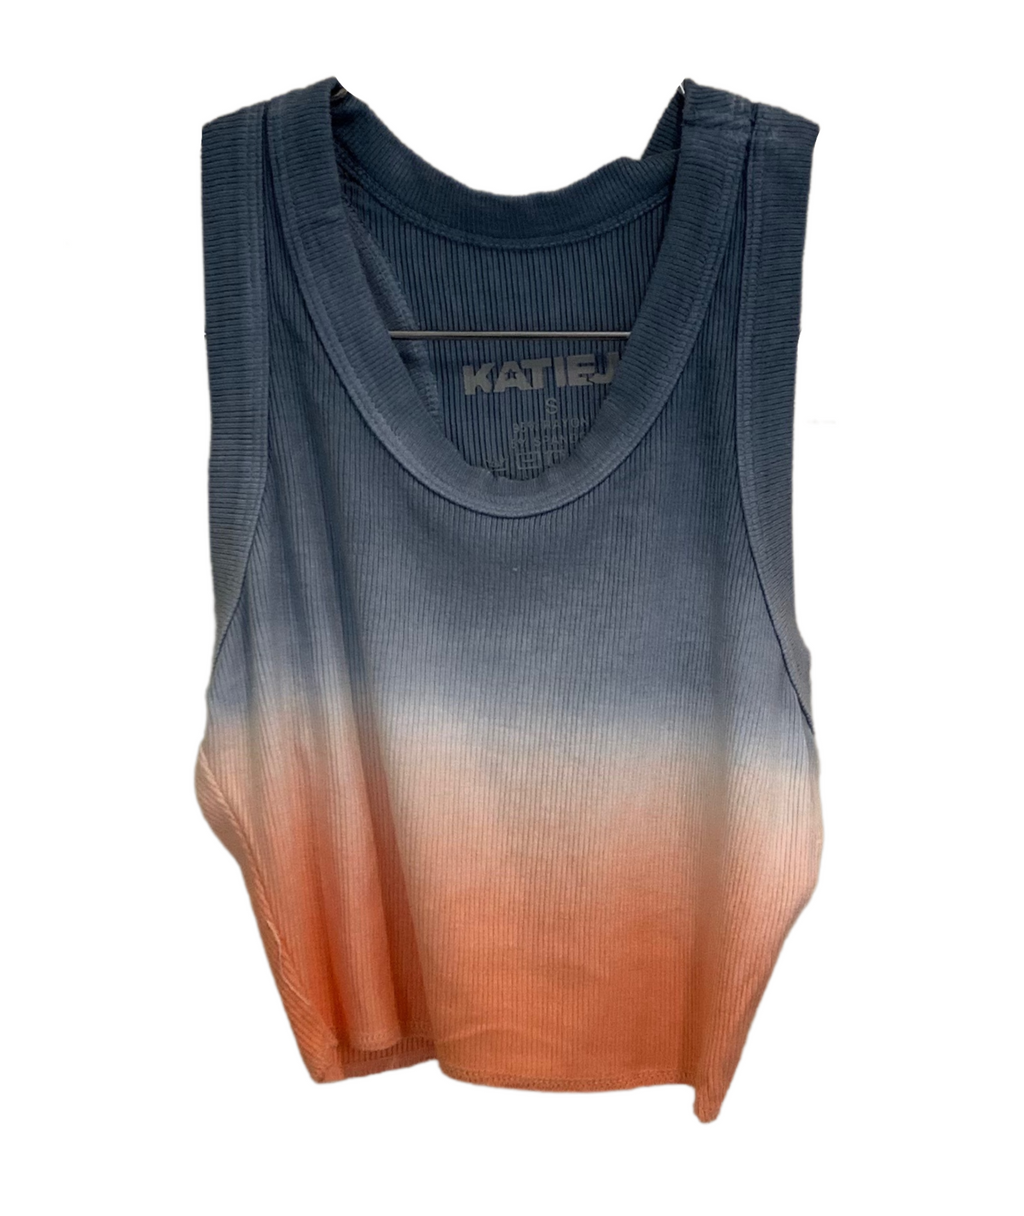 Katie J NYC Girls Livi Rain Cantalope Tie Dye Crop Top